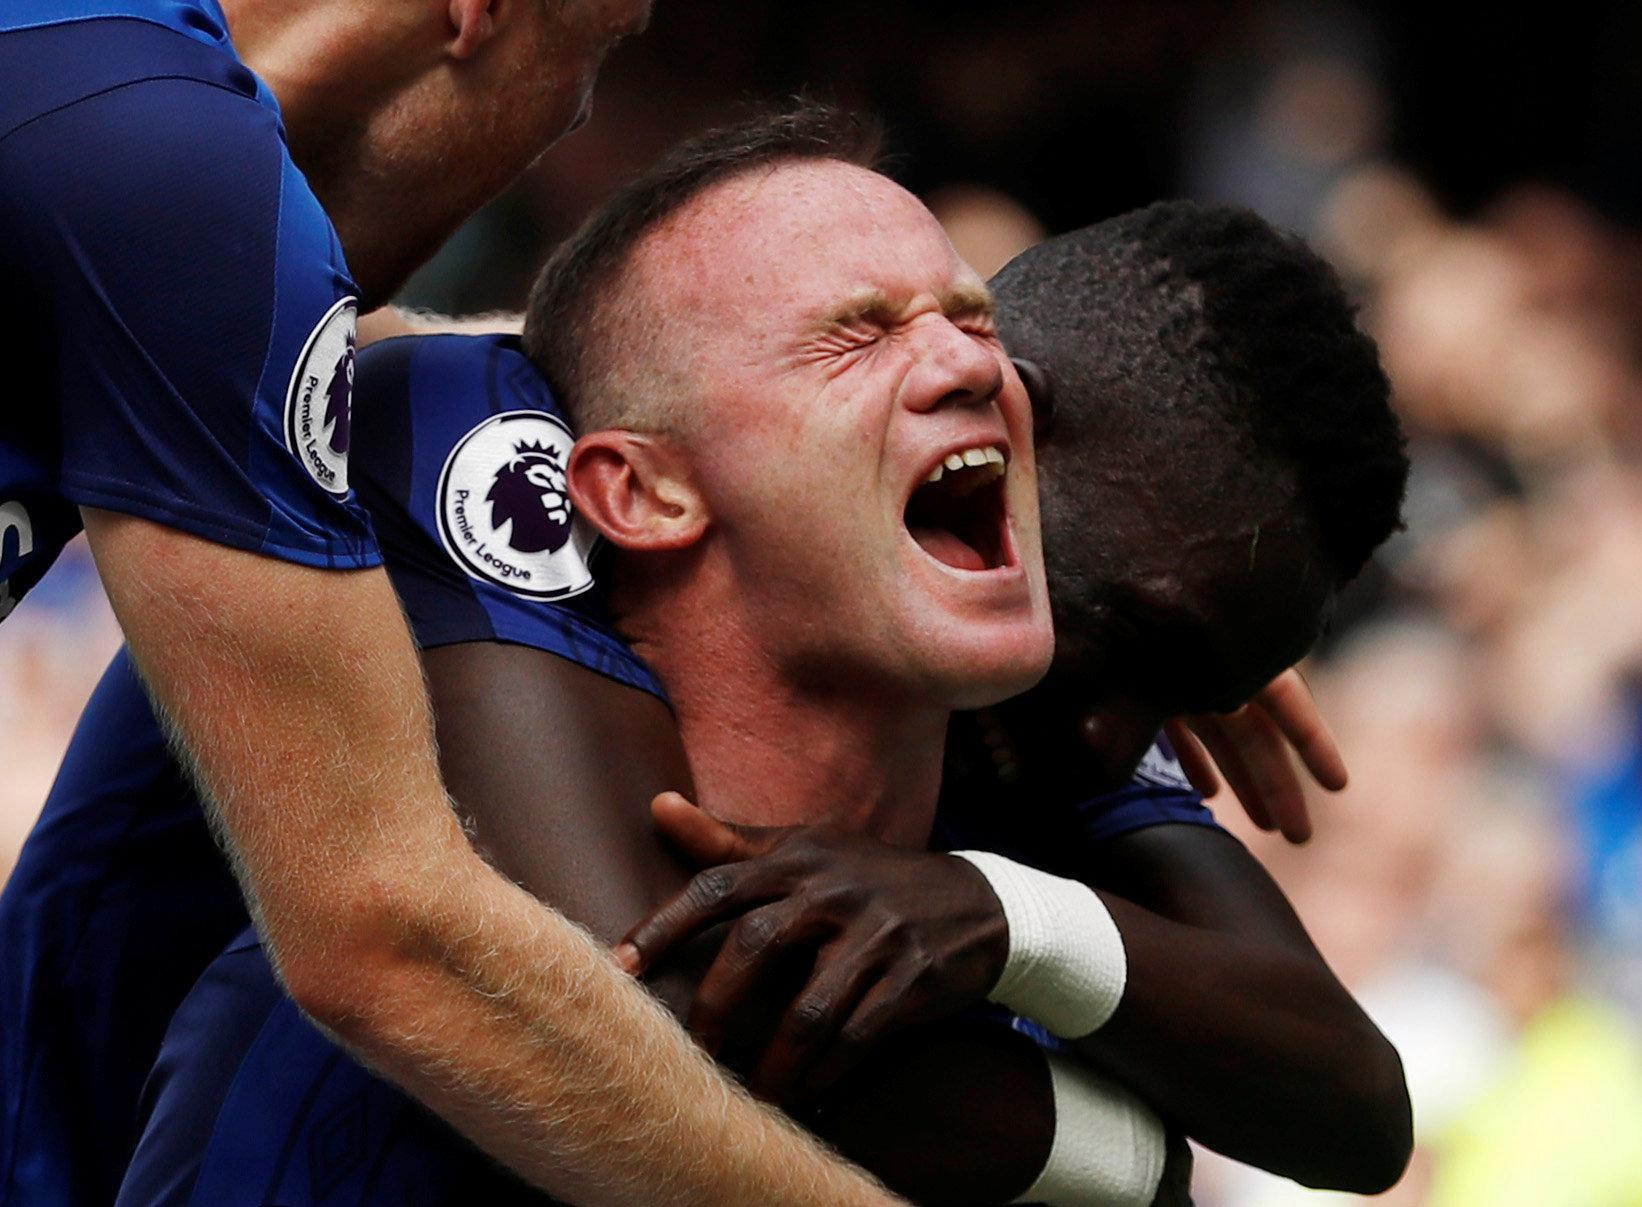 Rooney will be hoping he can enjoy a dream season with his boyhood club